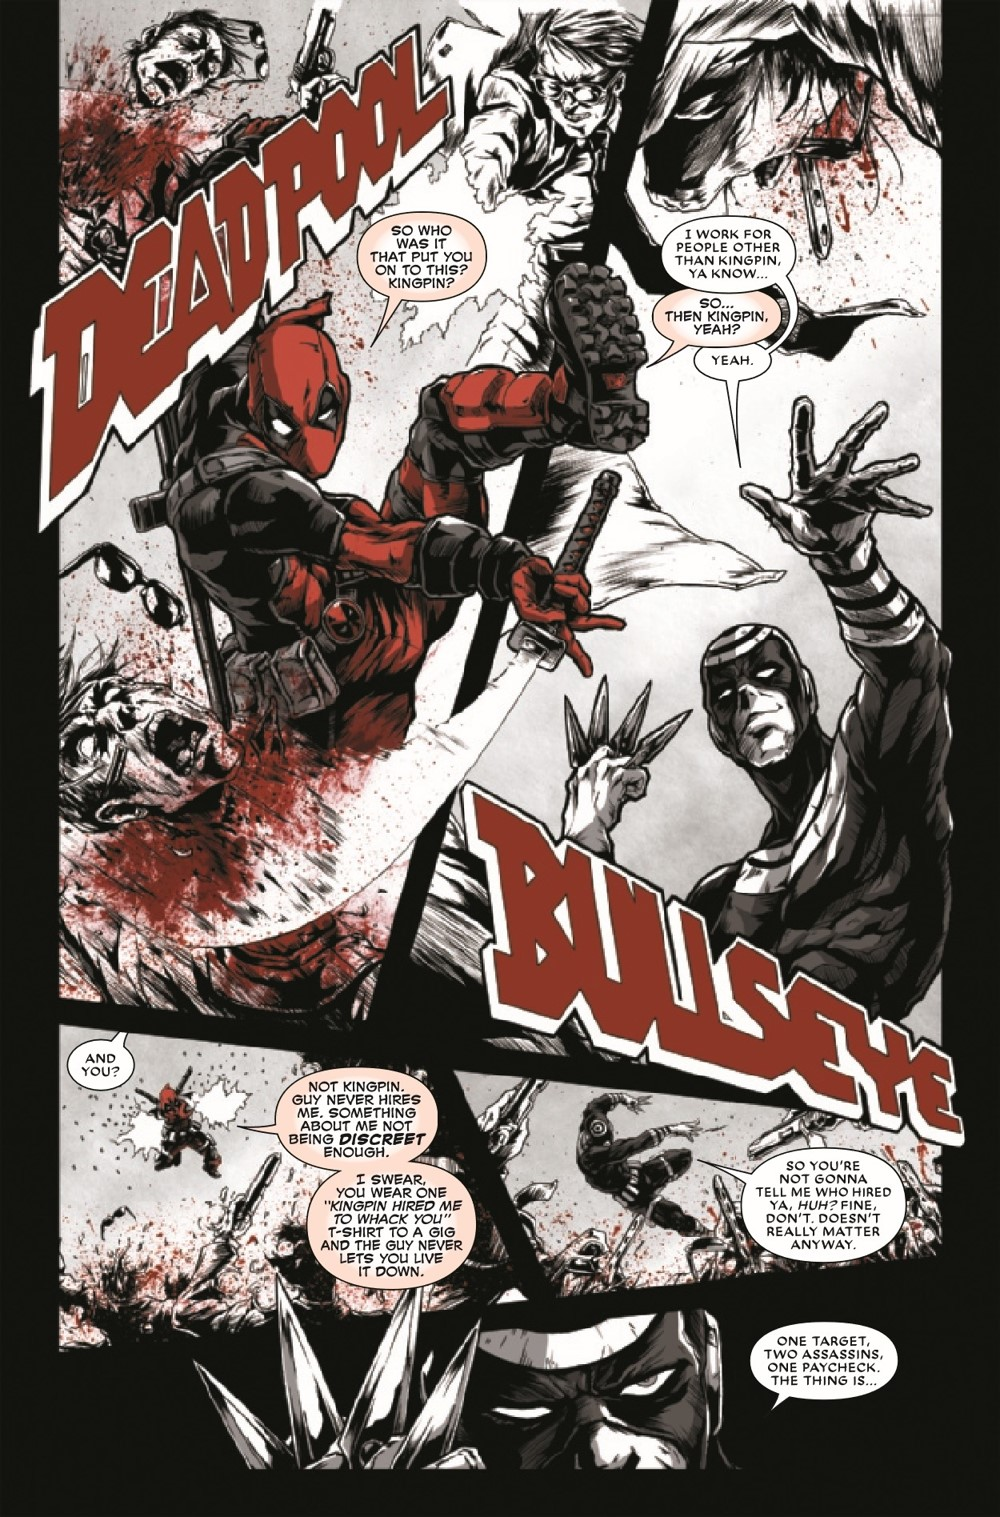 DPOOLBLKWHBL2021003_Preview-5 ComicList Previews: DEADPOOL BLACK WHITE AND BLOOD #3 (OF 4)